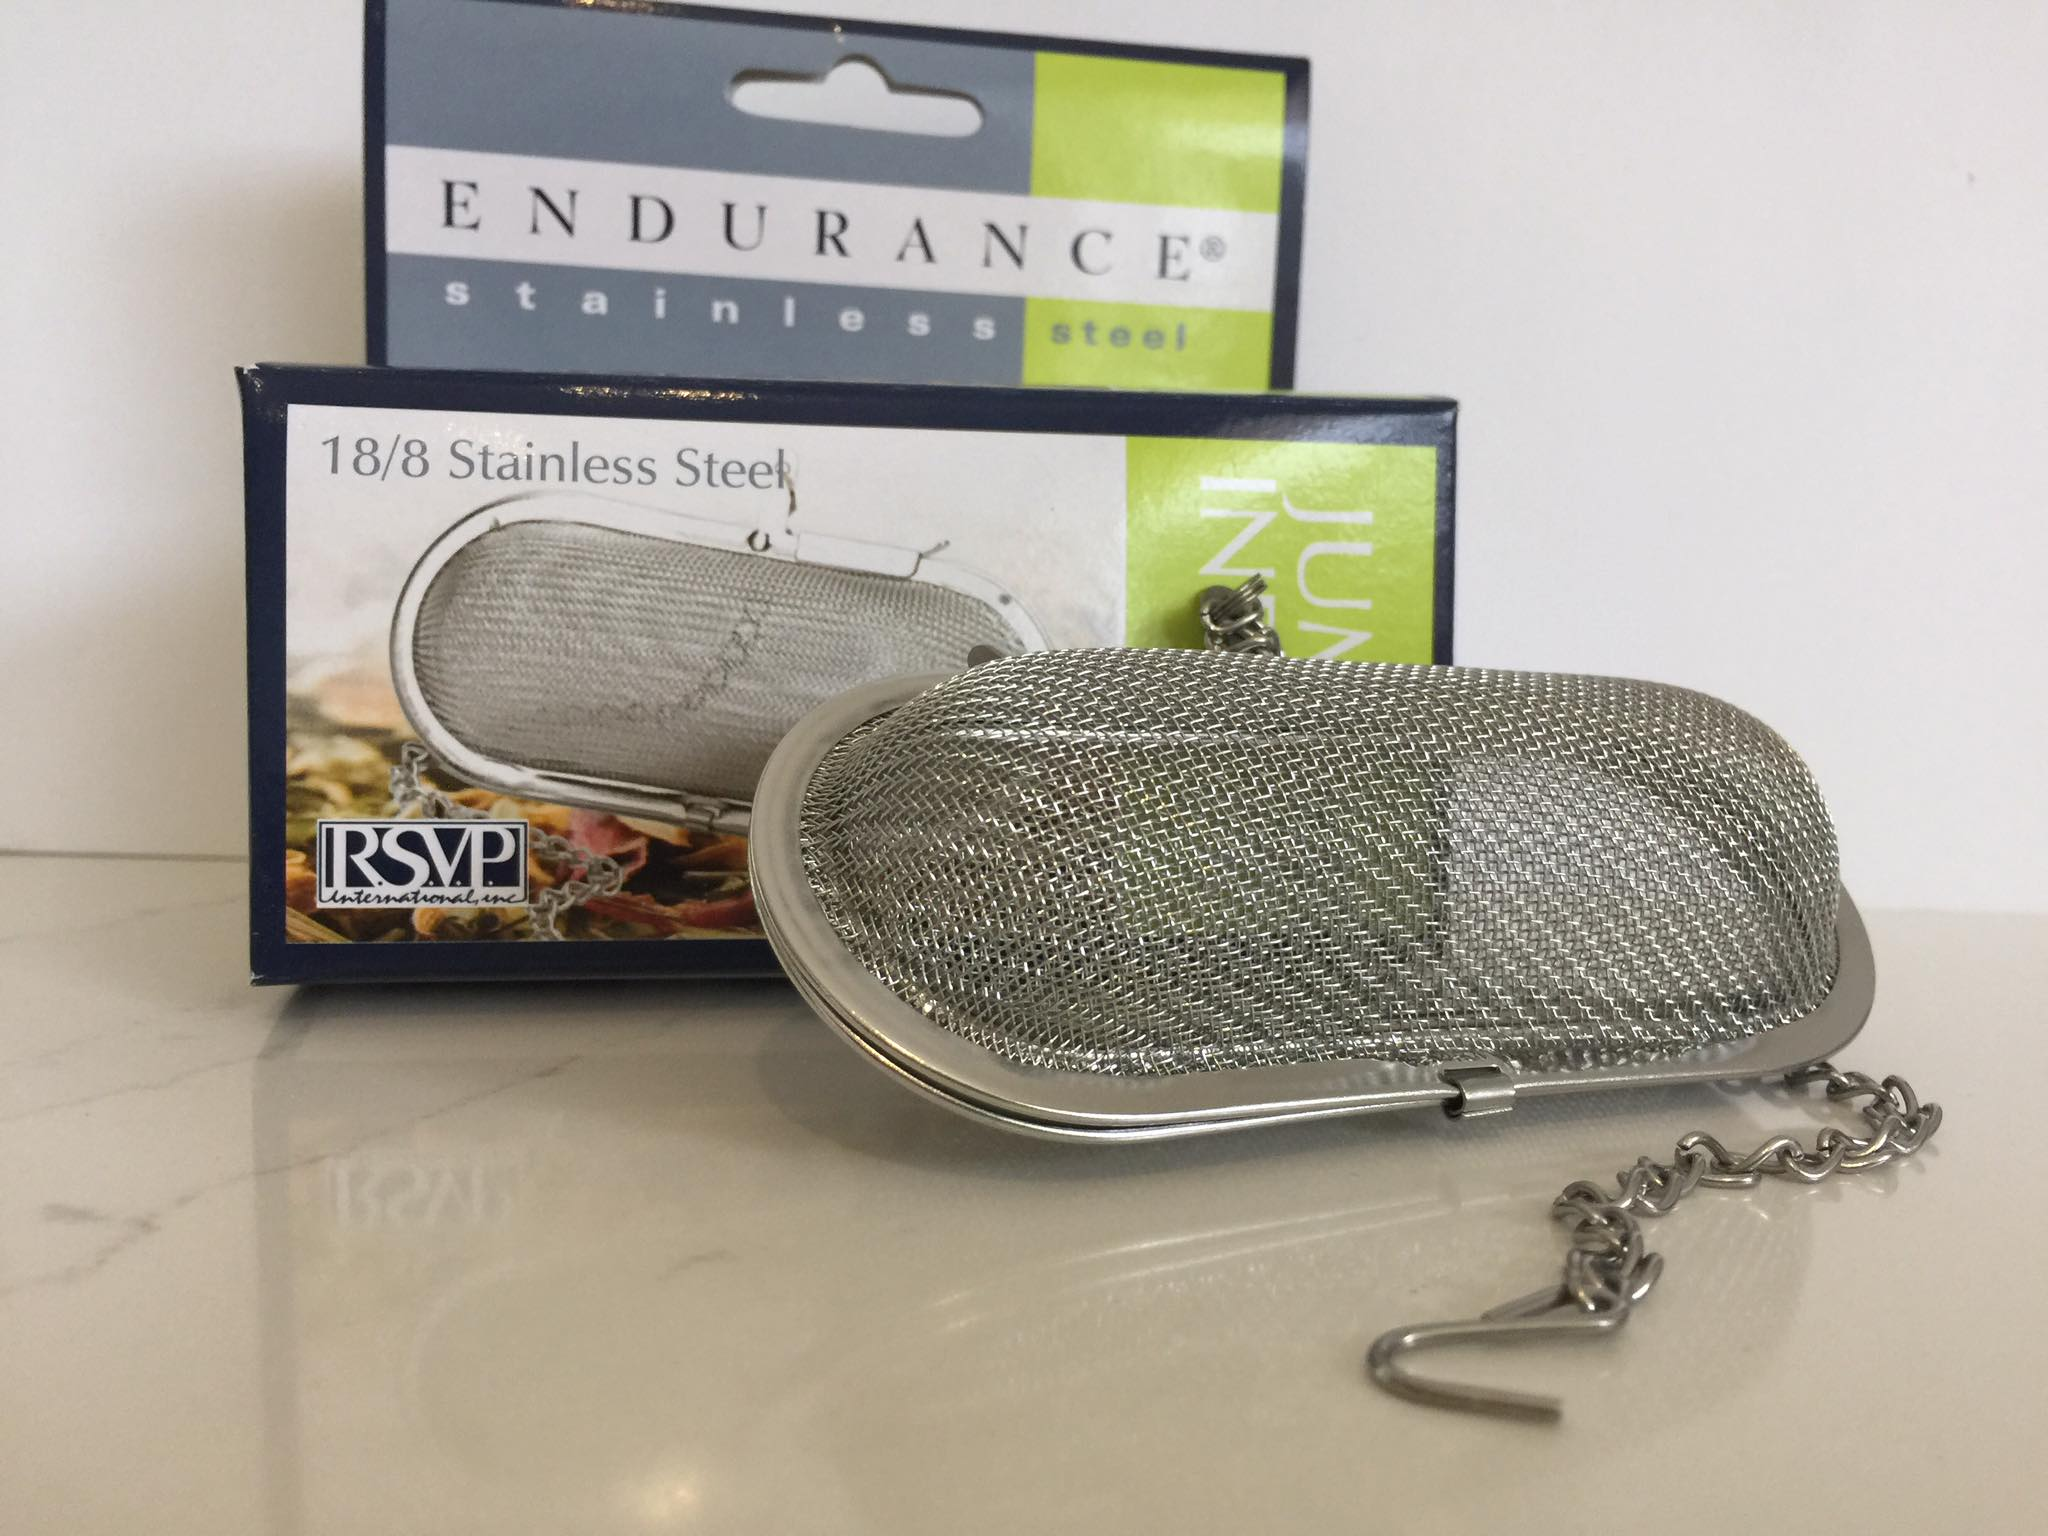 RSVP Endurance Floating Tea Infuser